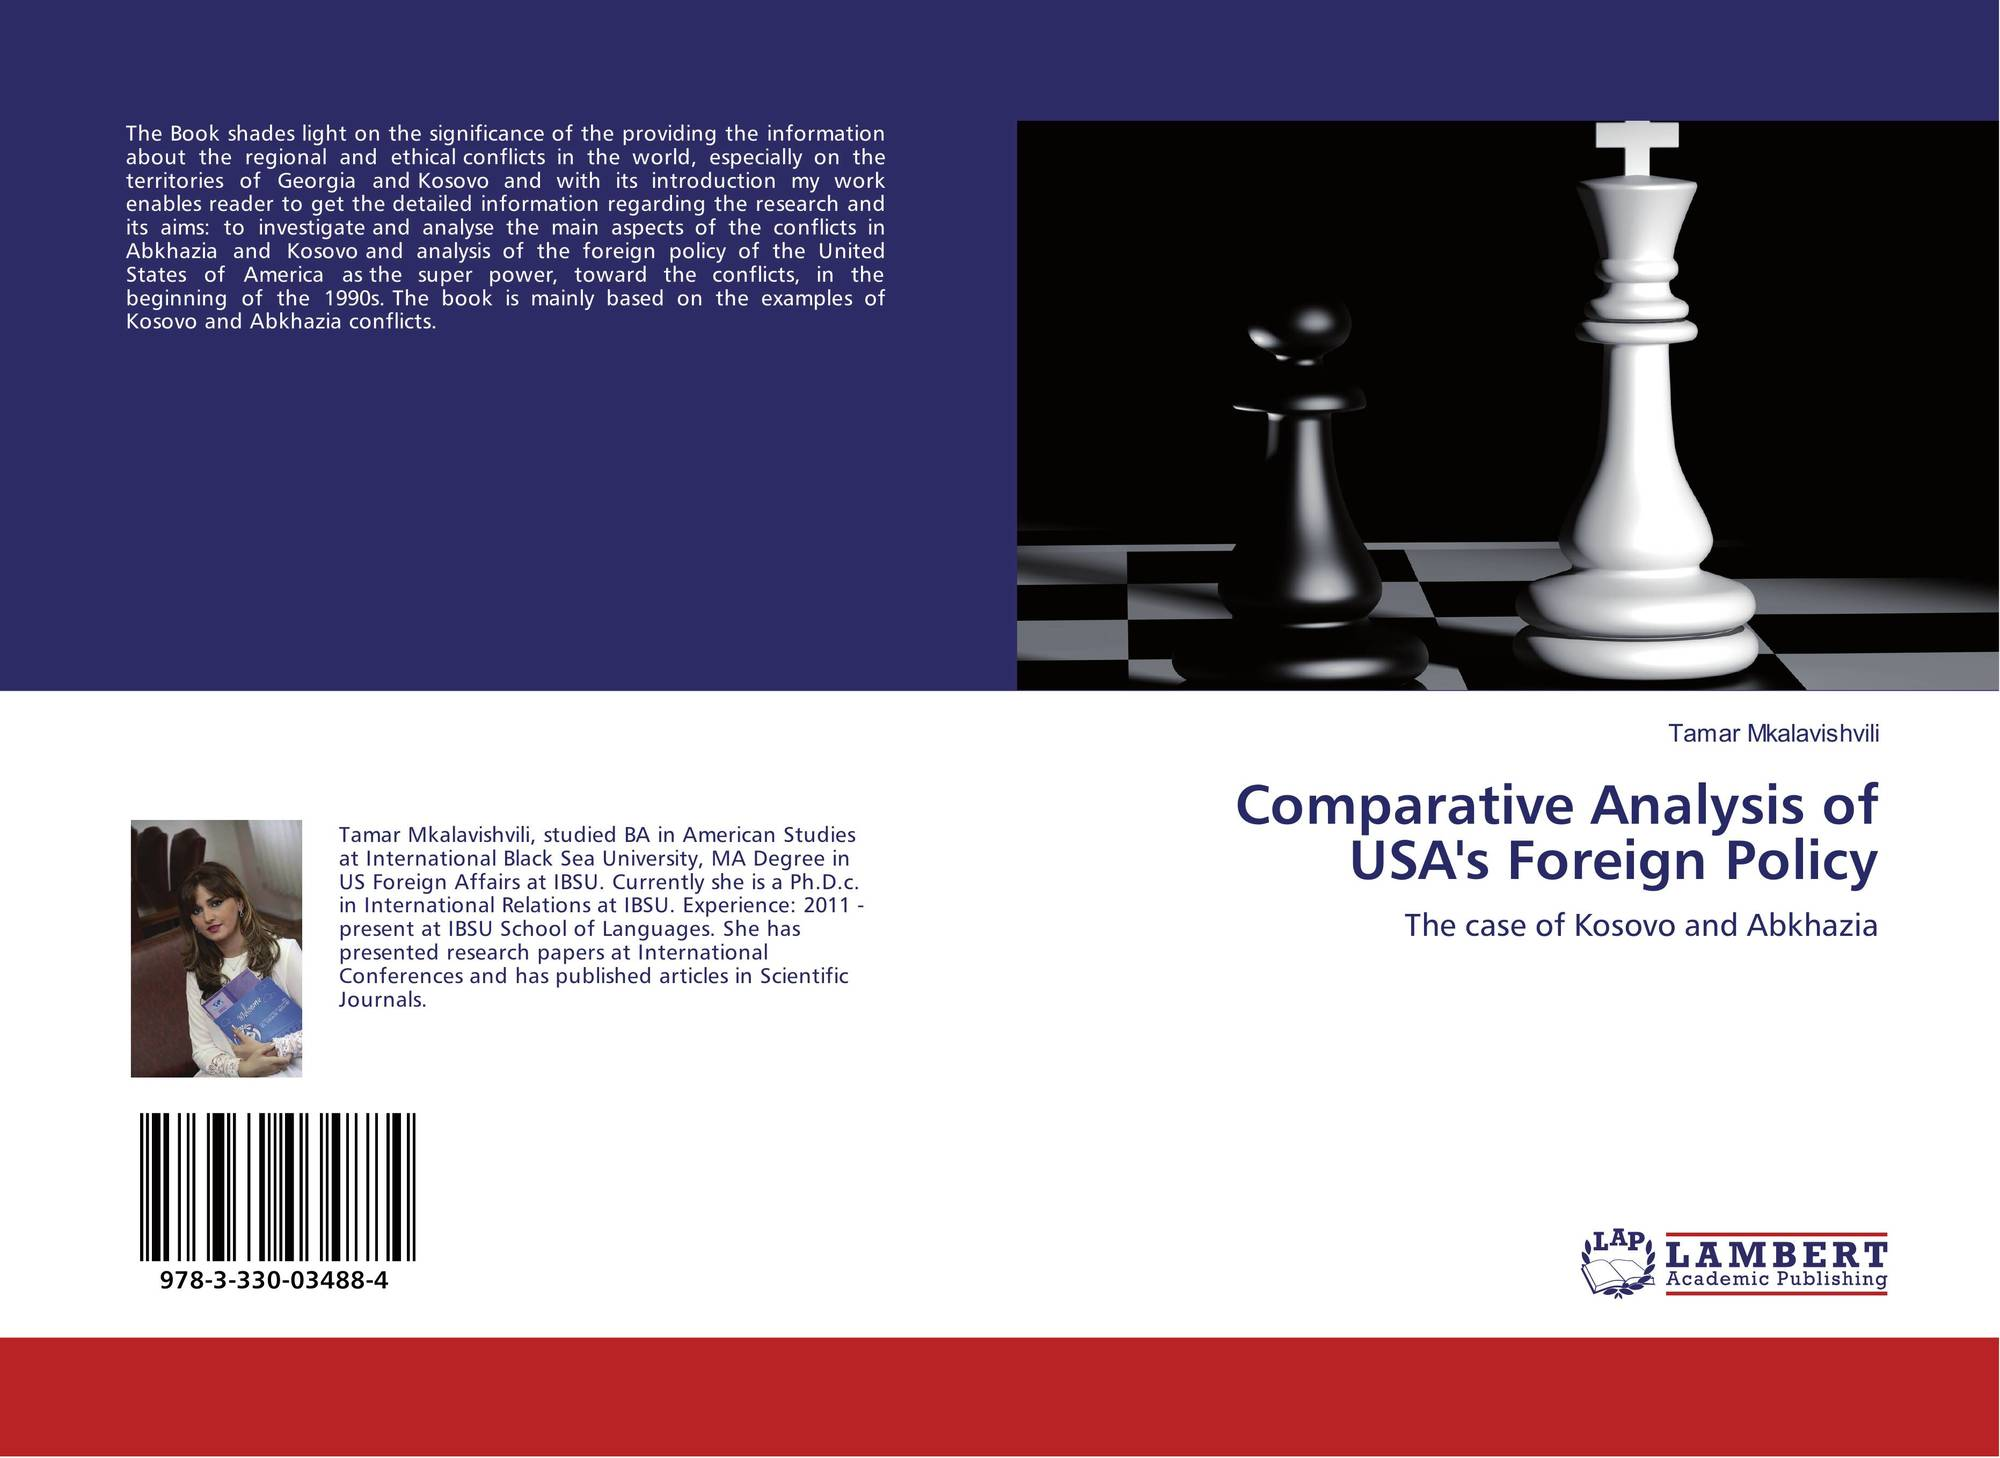 an analysis of the american foreign policy A variety of traditional concepts of foreign policy remain helpful today as we consider the proper role of the united states in, and its approach to, foreign affairs these include isolationism, the idealism versus realism debate, liberal internationalism, hard versus soft power, and the grand strategy of us.